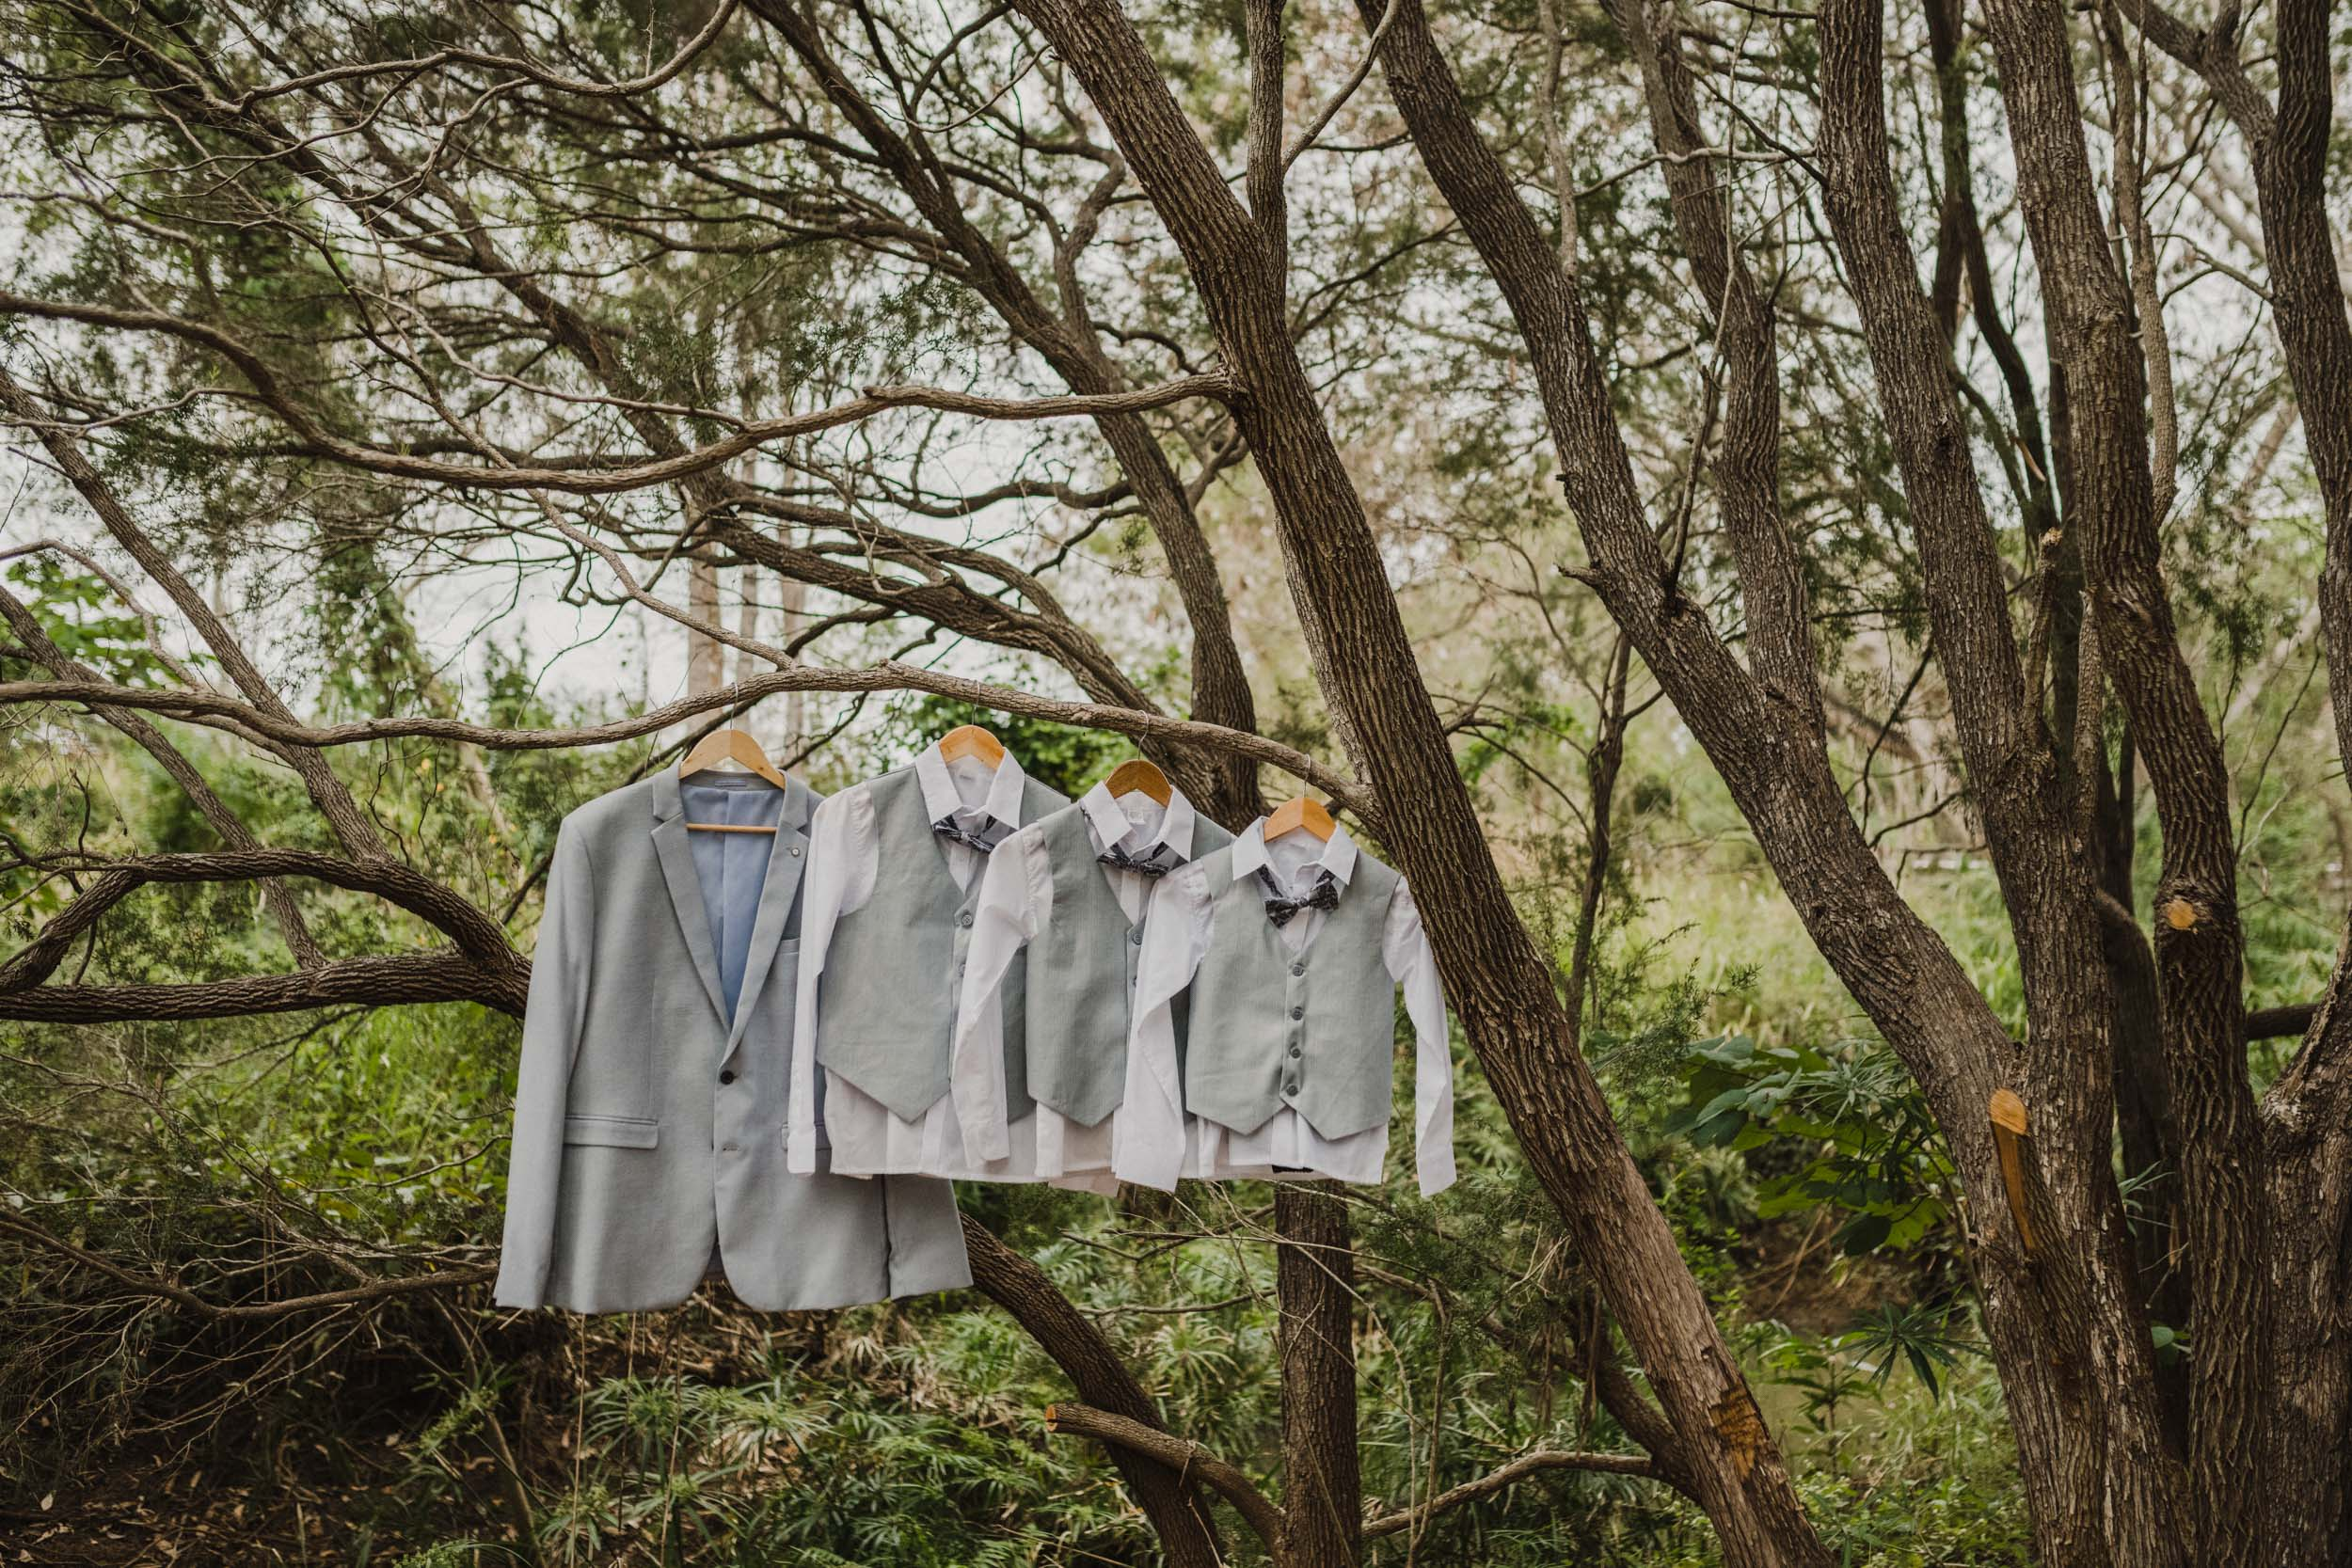 The Raw Photographer - Cairns Wedding Photography - Mareeba Queensland - Australian Outback wedding - Dress Made With Love Bridal - Ceremony Reception Venue Inspiration-1.jpg